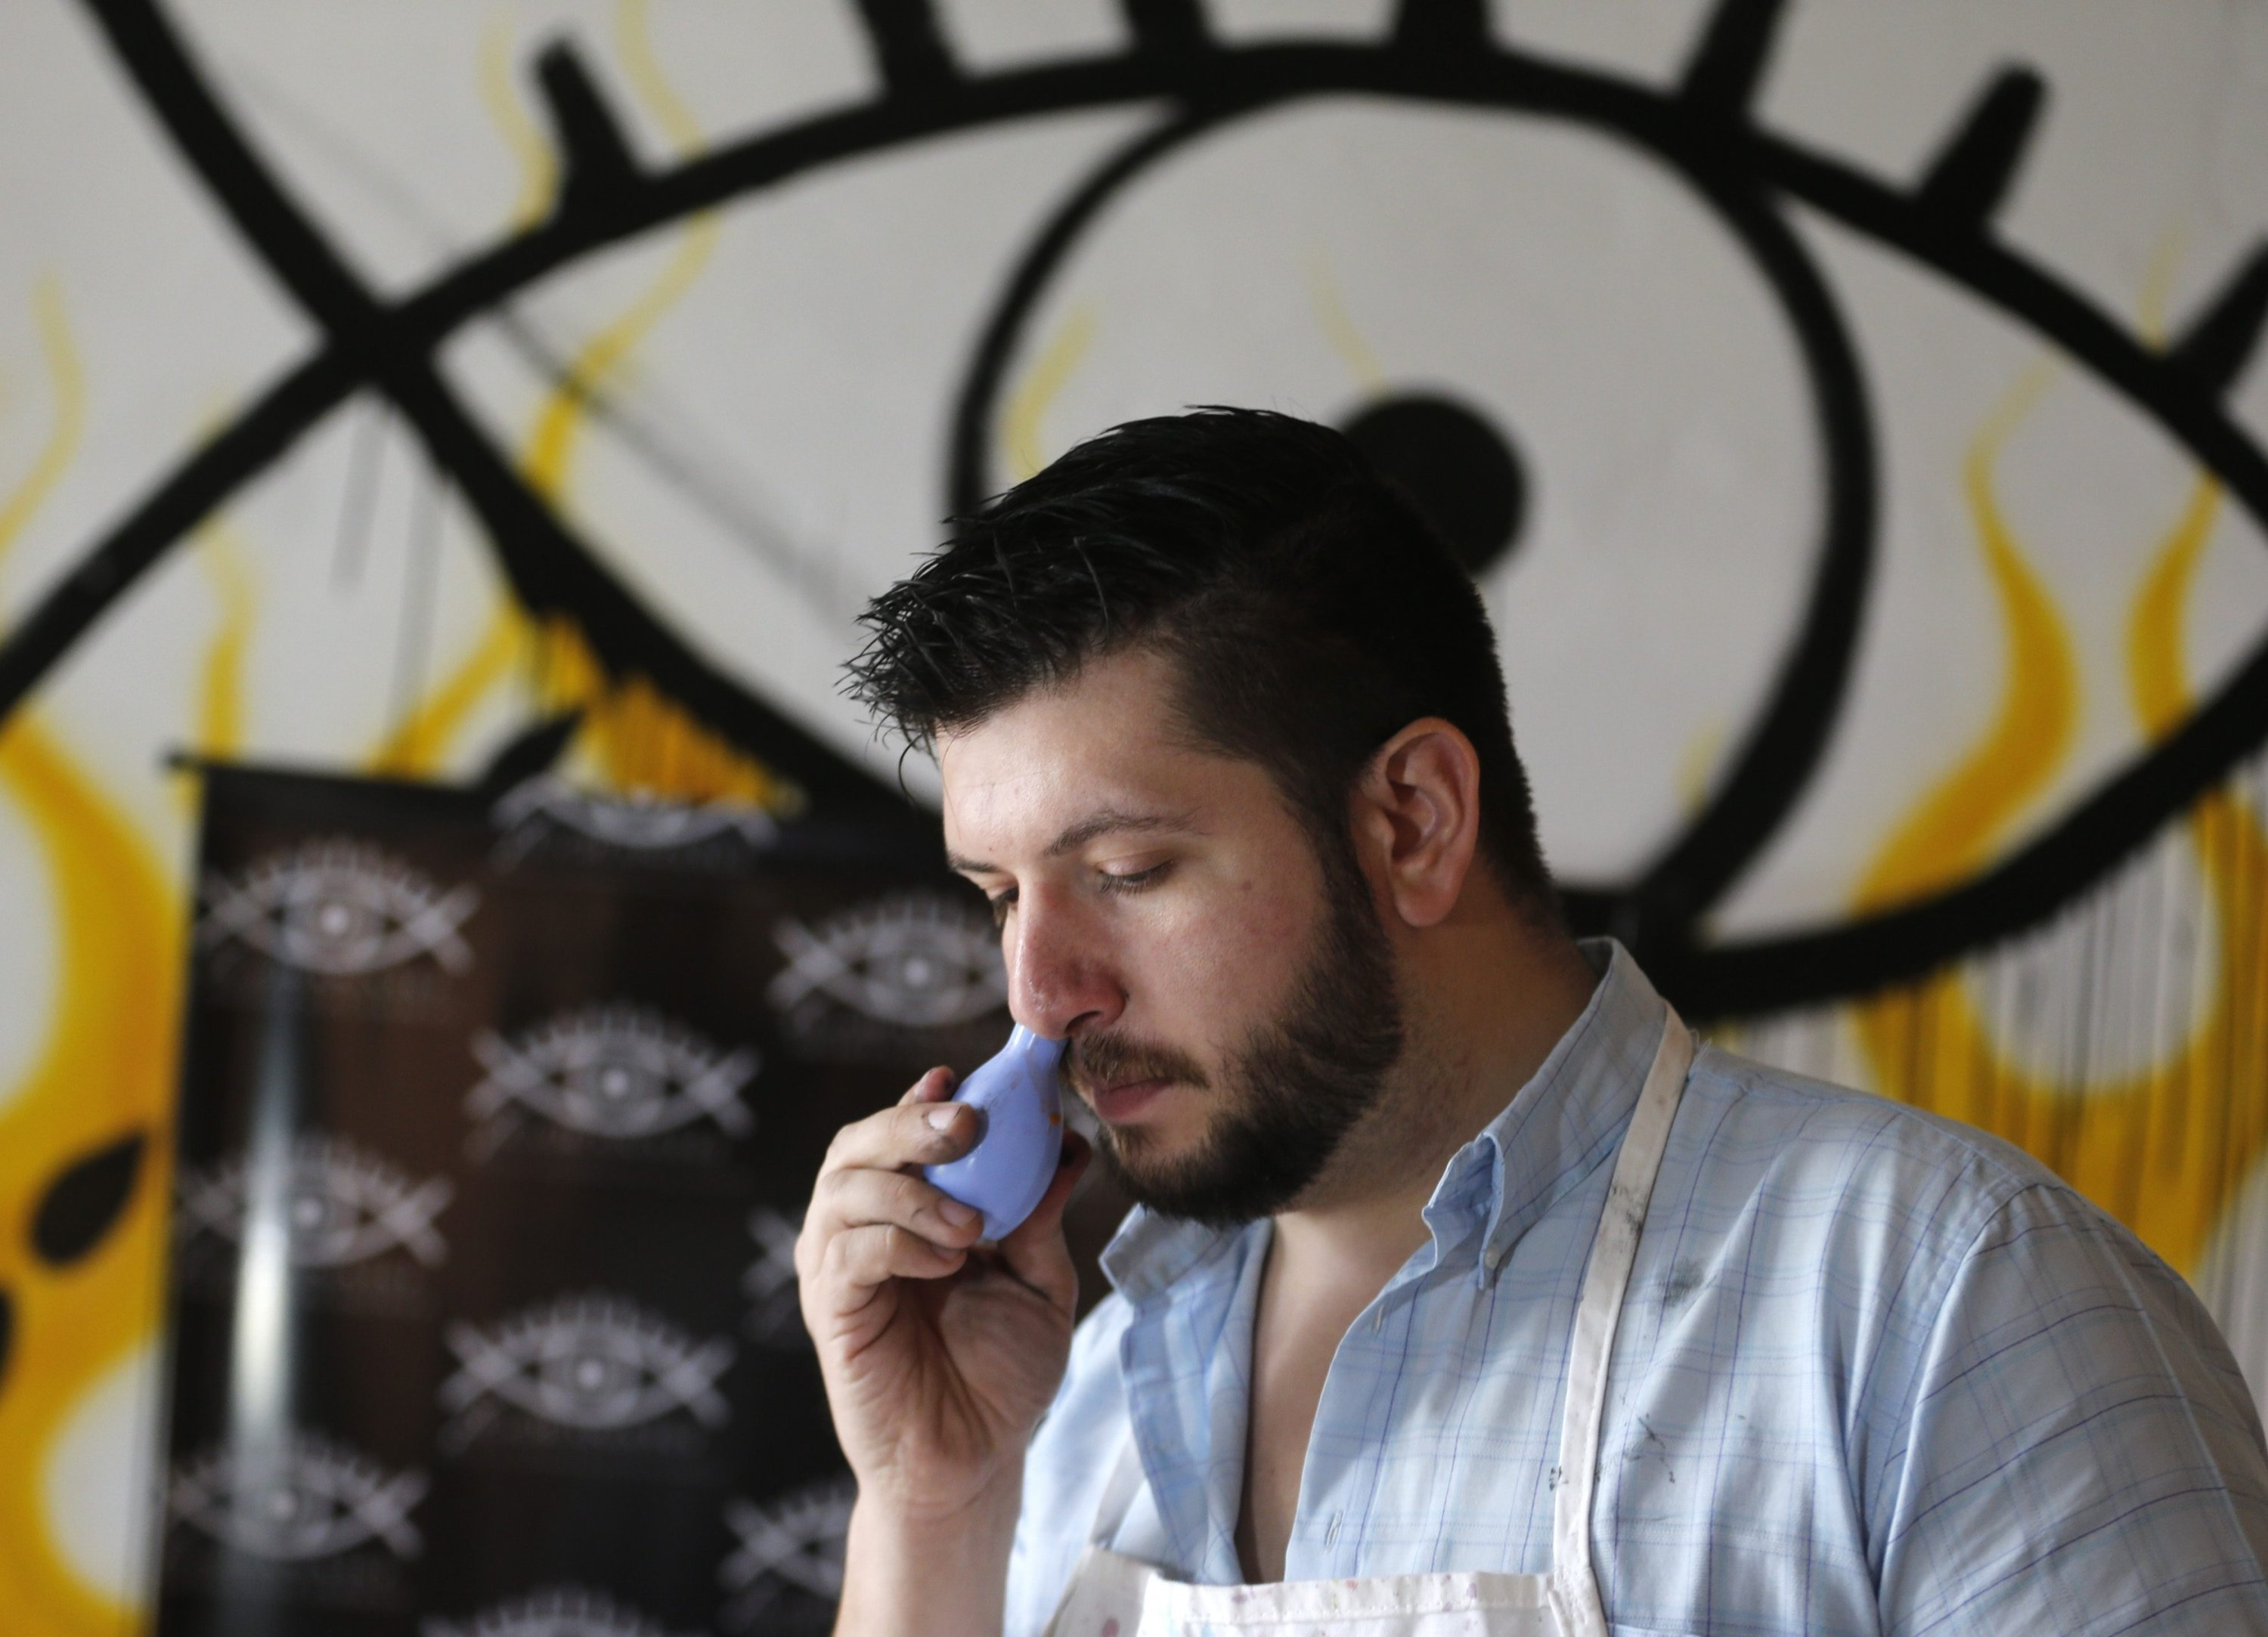 Artist Leandro Granato inhales paint as he prepares to paint at his studio in Alejandro Korn town in greater Buenos Aires, Argentina, Oct. 10, 2013. (REUTERS Photo)